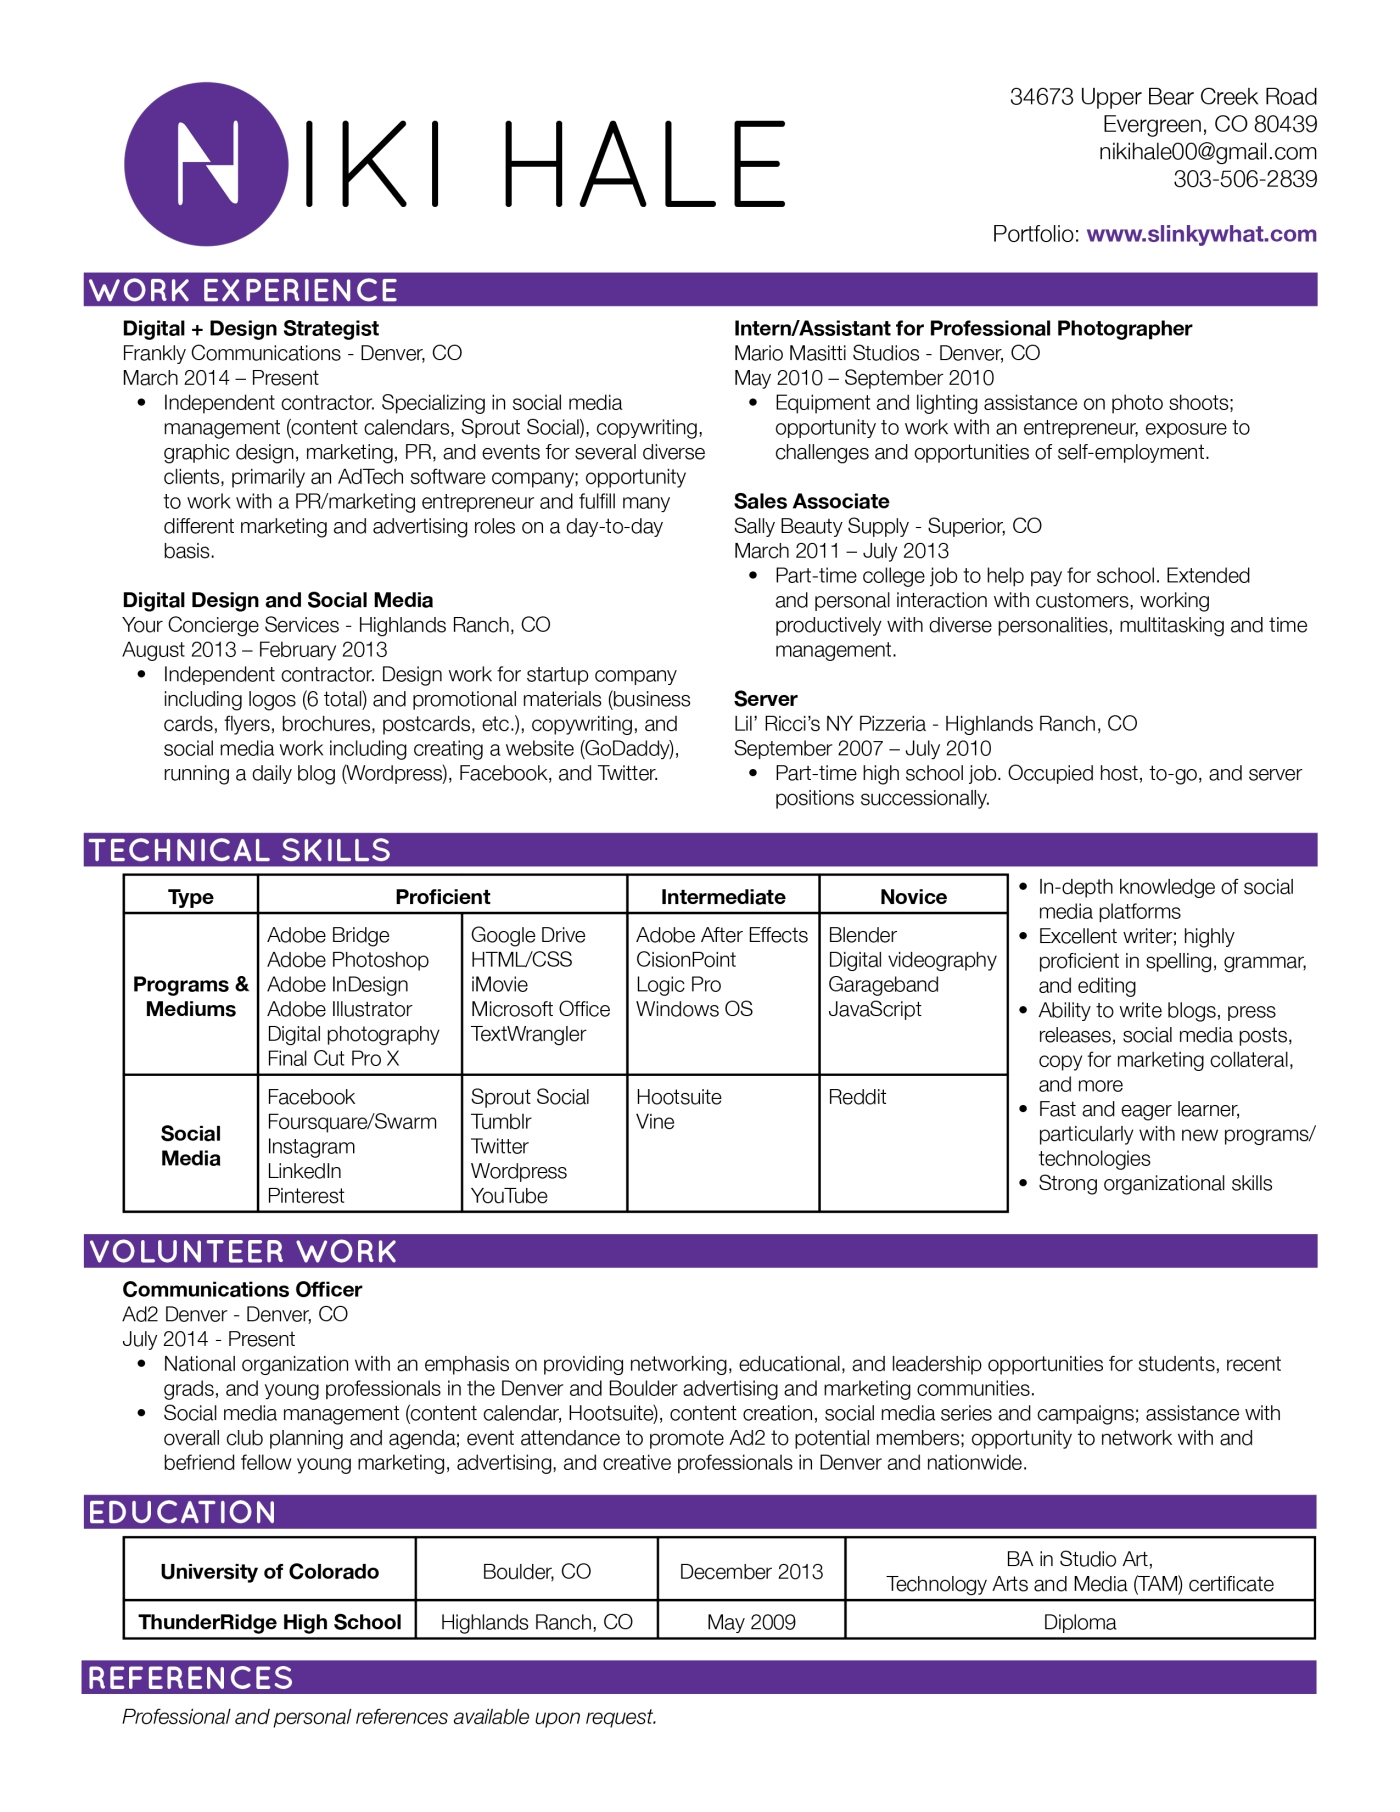 videographer resume david roos design videographer resume template sample resume of videographer videographer resume - Videographer Resume Template